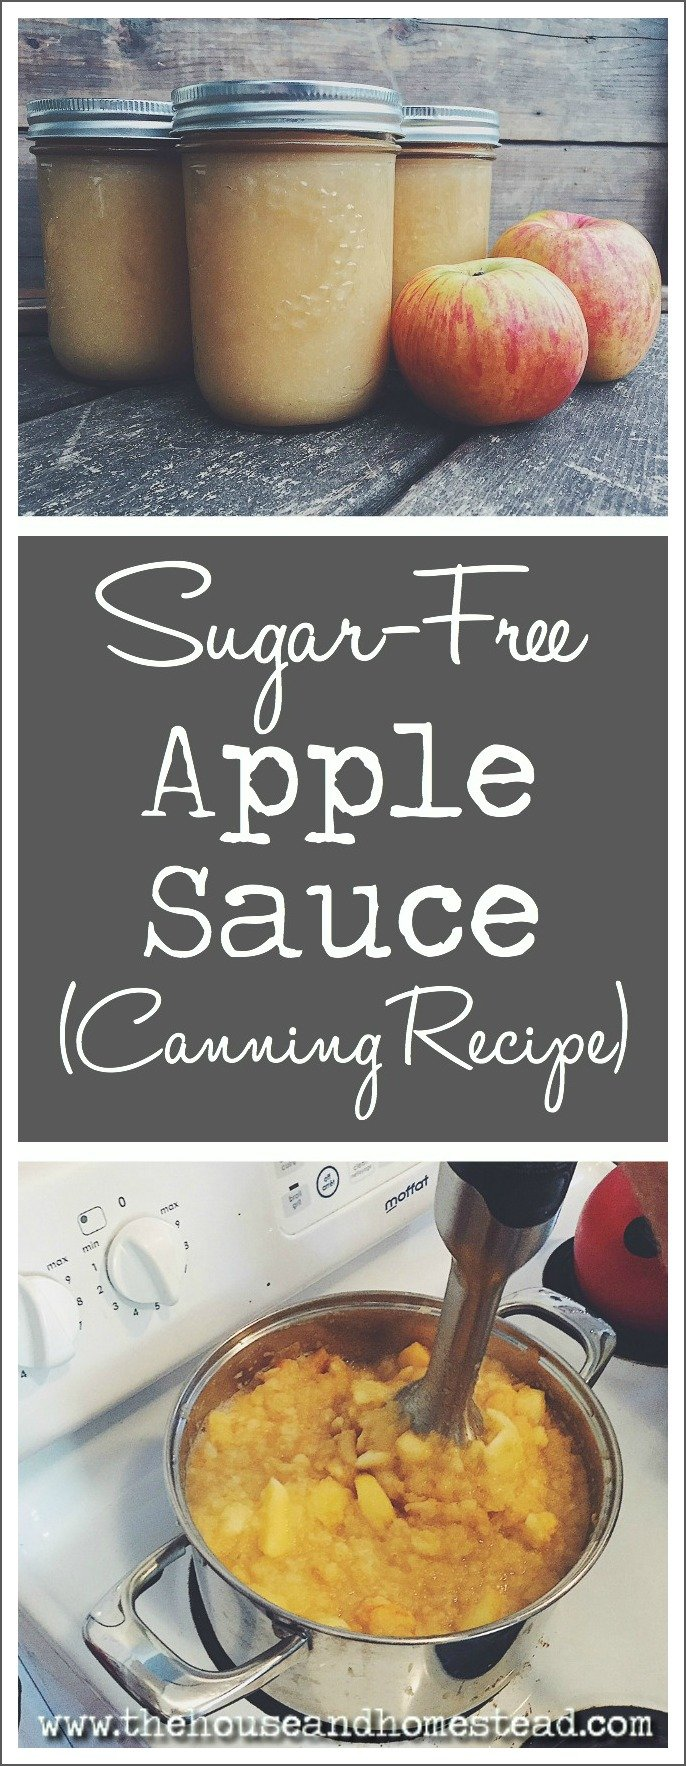 This sugar-free homemade applesauce is great for baking, baby food or eating straight out of the jar. It can be stored in the freezer or canned for long-term storage in the pantry.